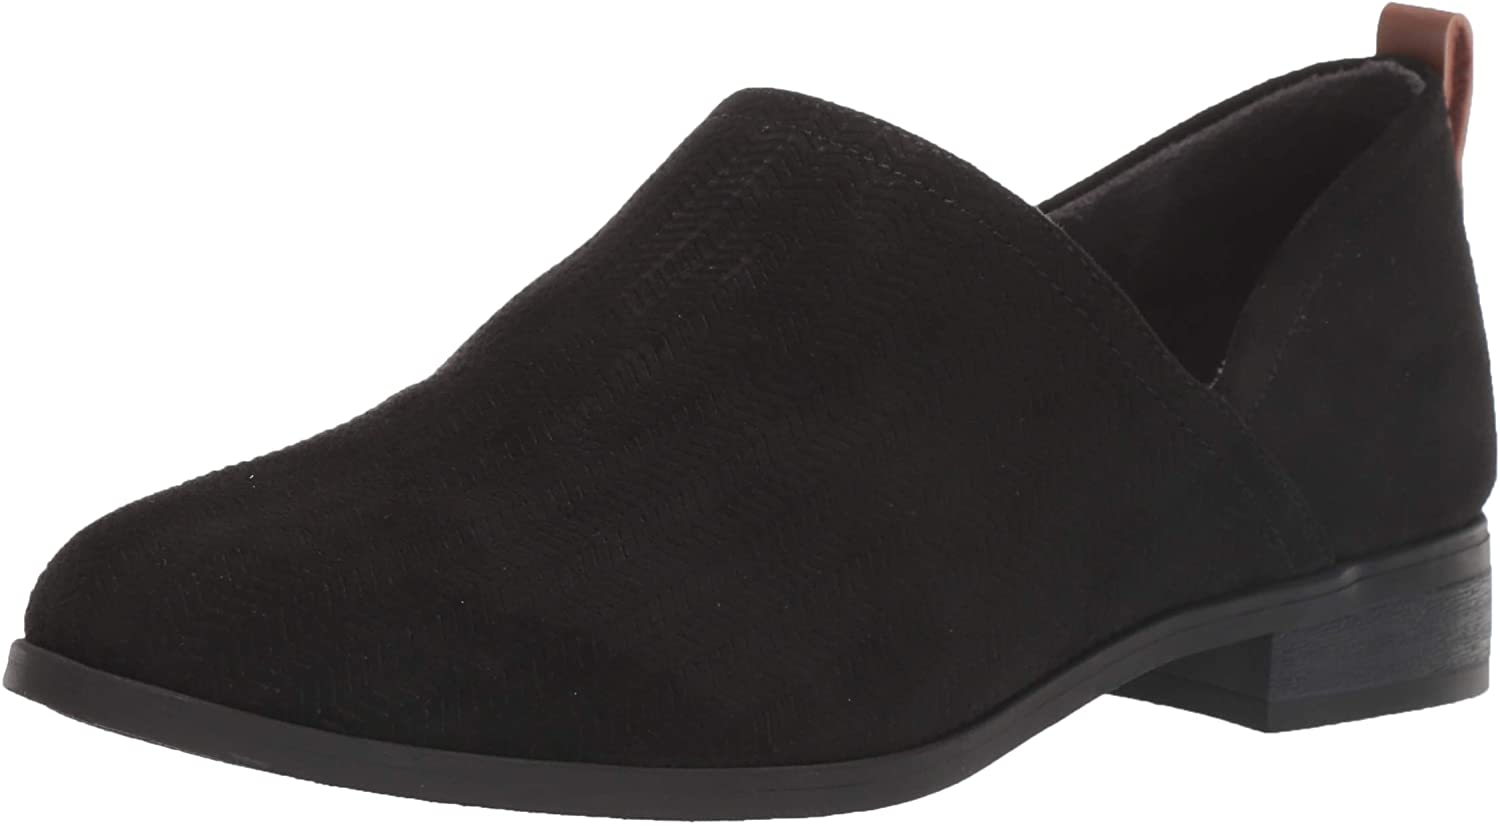 Dr. Scholl's Shoes Women's Ruler Ankle Boot Loafer